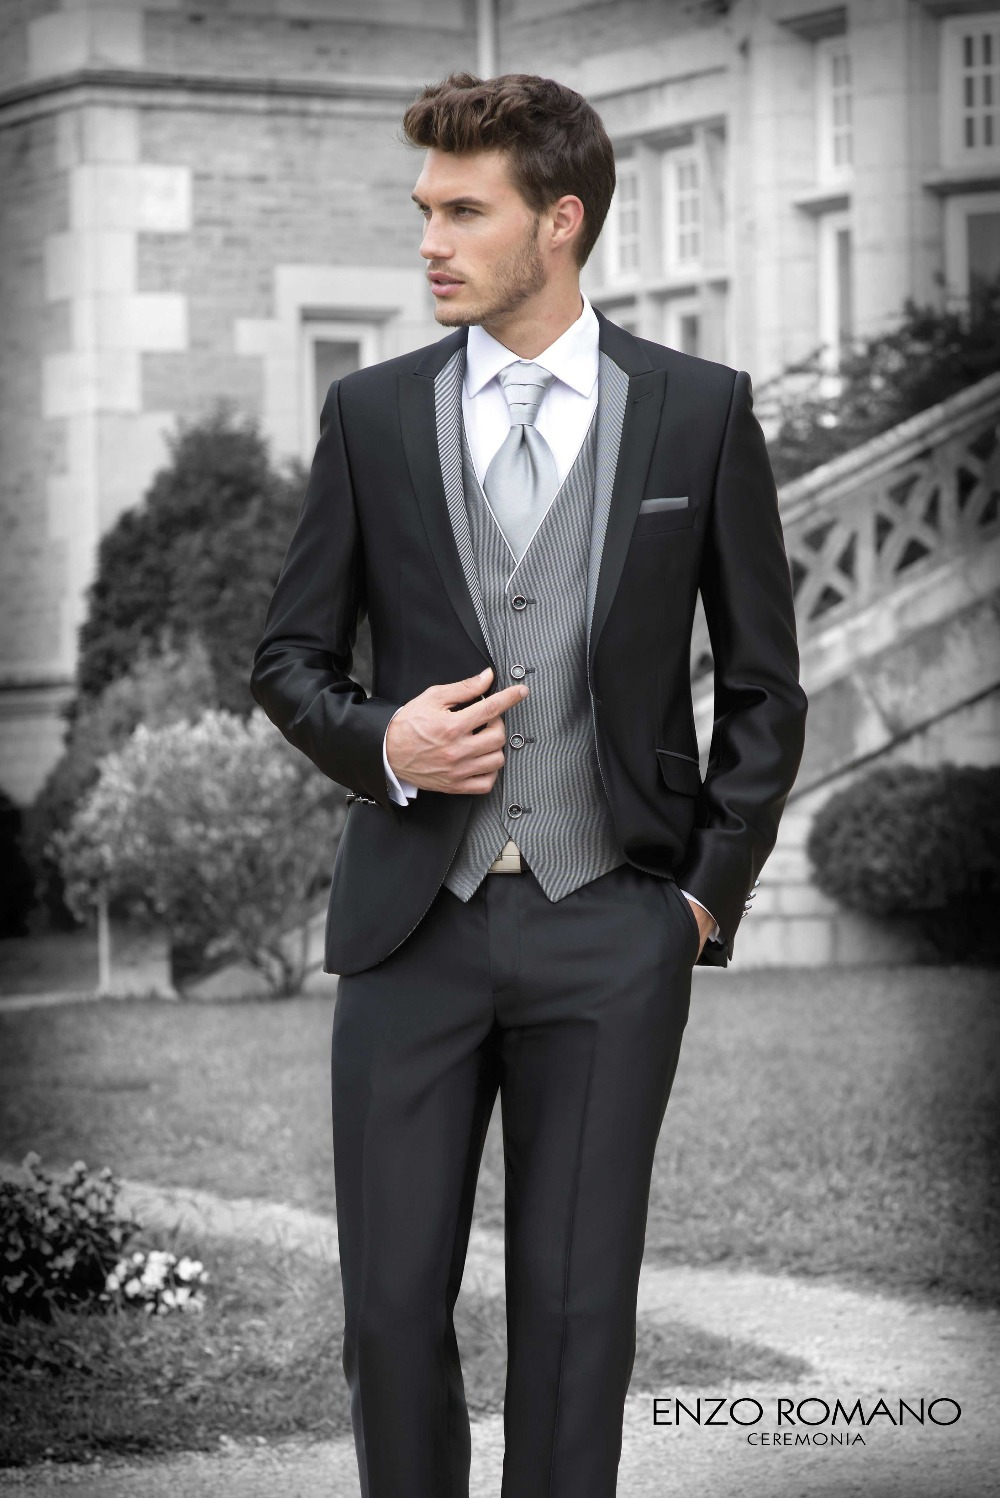 Compare Prices on Black 2016 Suits for Men- Online Shopping/Buy ...